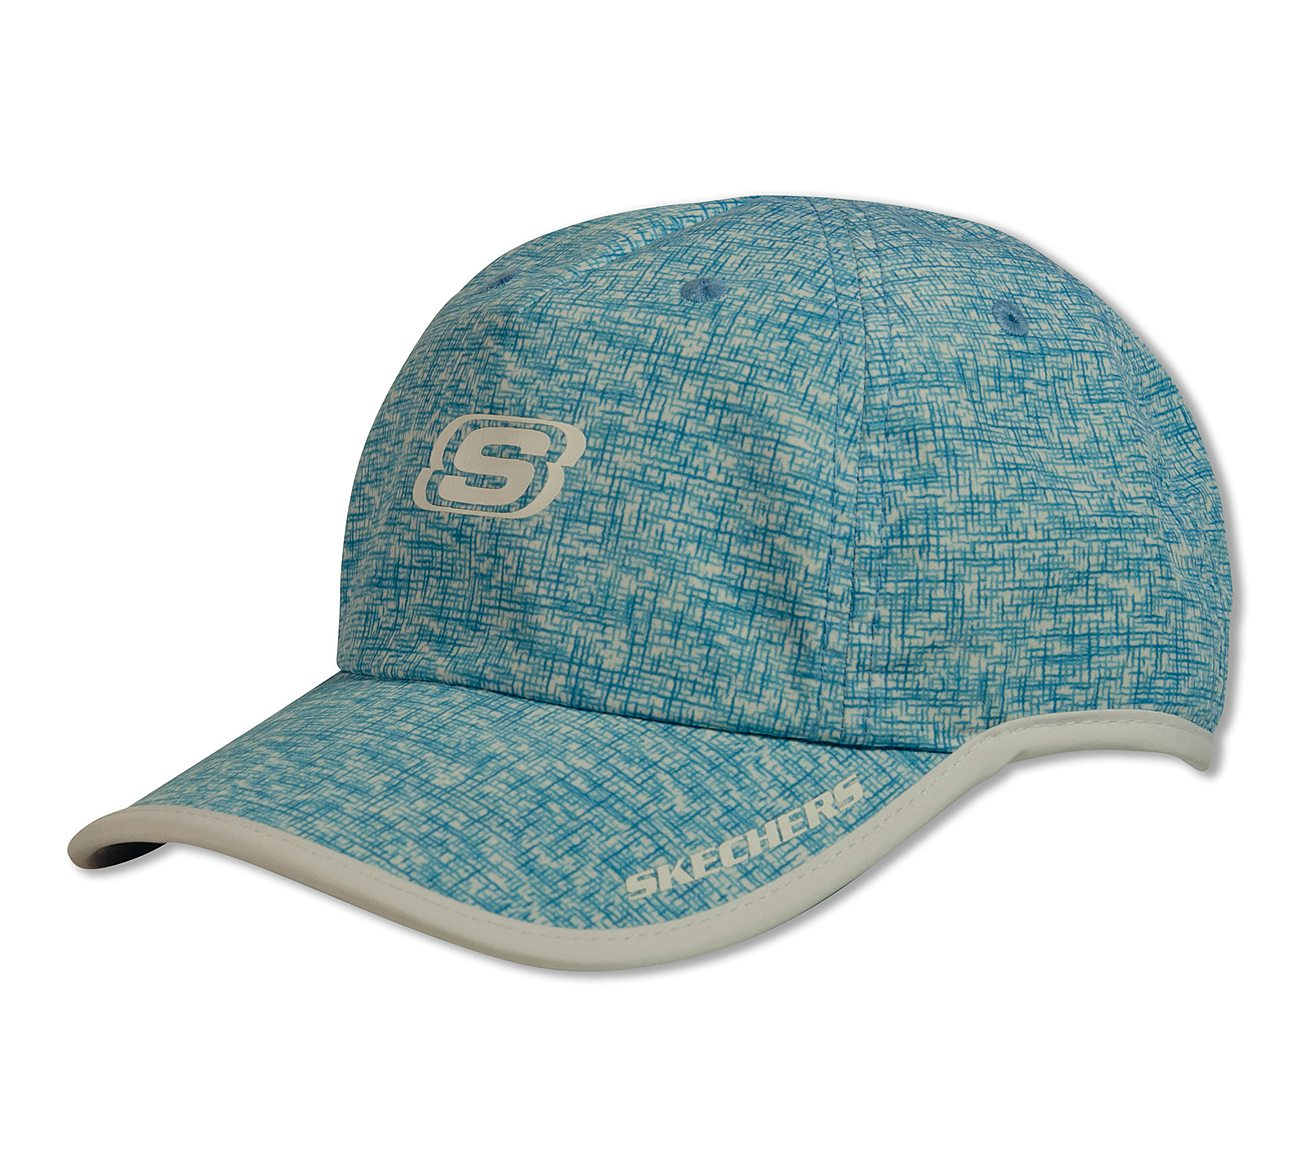 Buy SKECHERS Tone Adjustable Hat Accessories Shoes only  24.00 602a3f9f62e